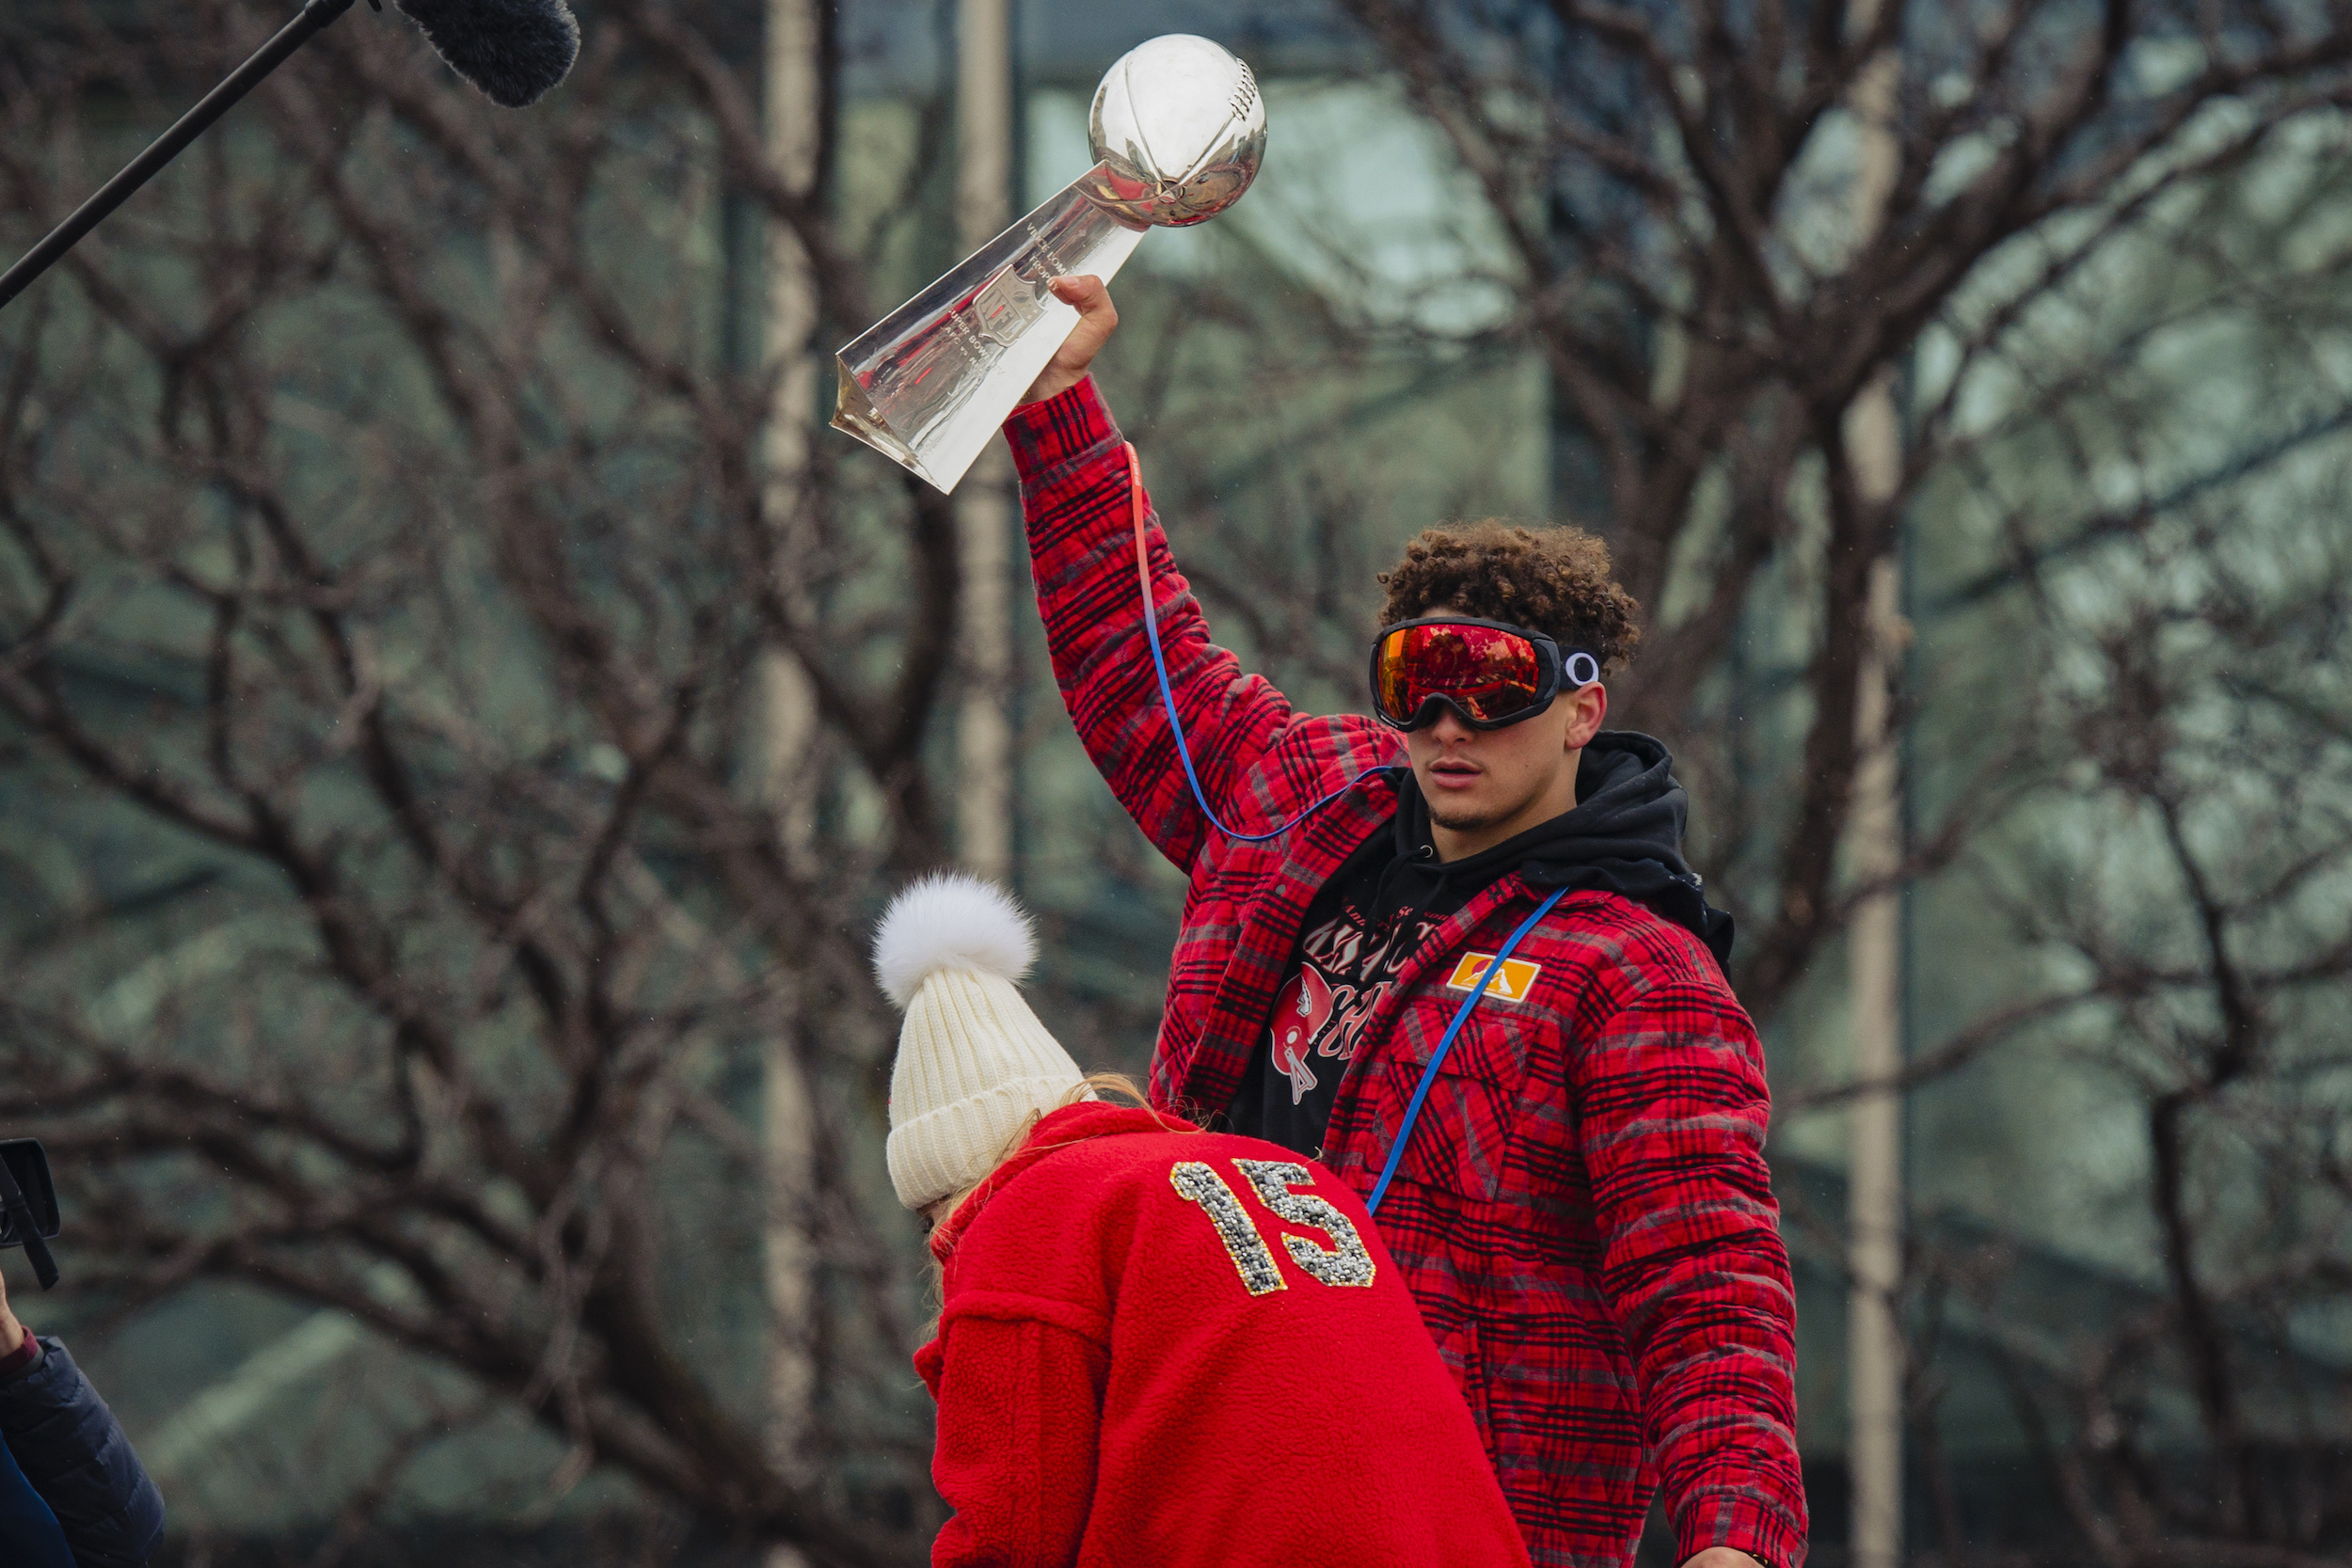 Kansas City Chiefs quarterback Patrick Mahomes is a force both on the football field and the beer pong table.